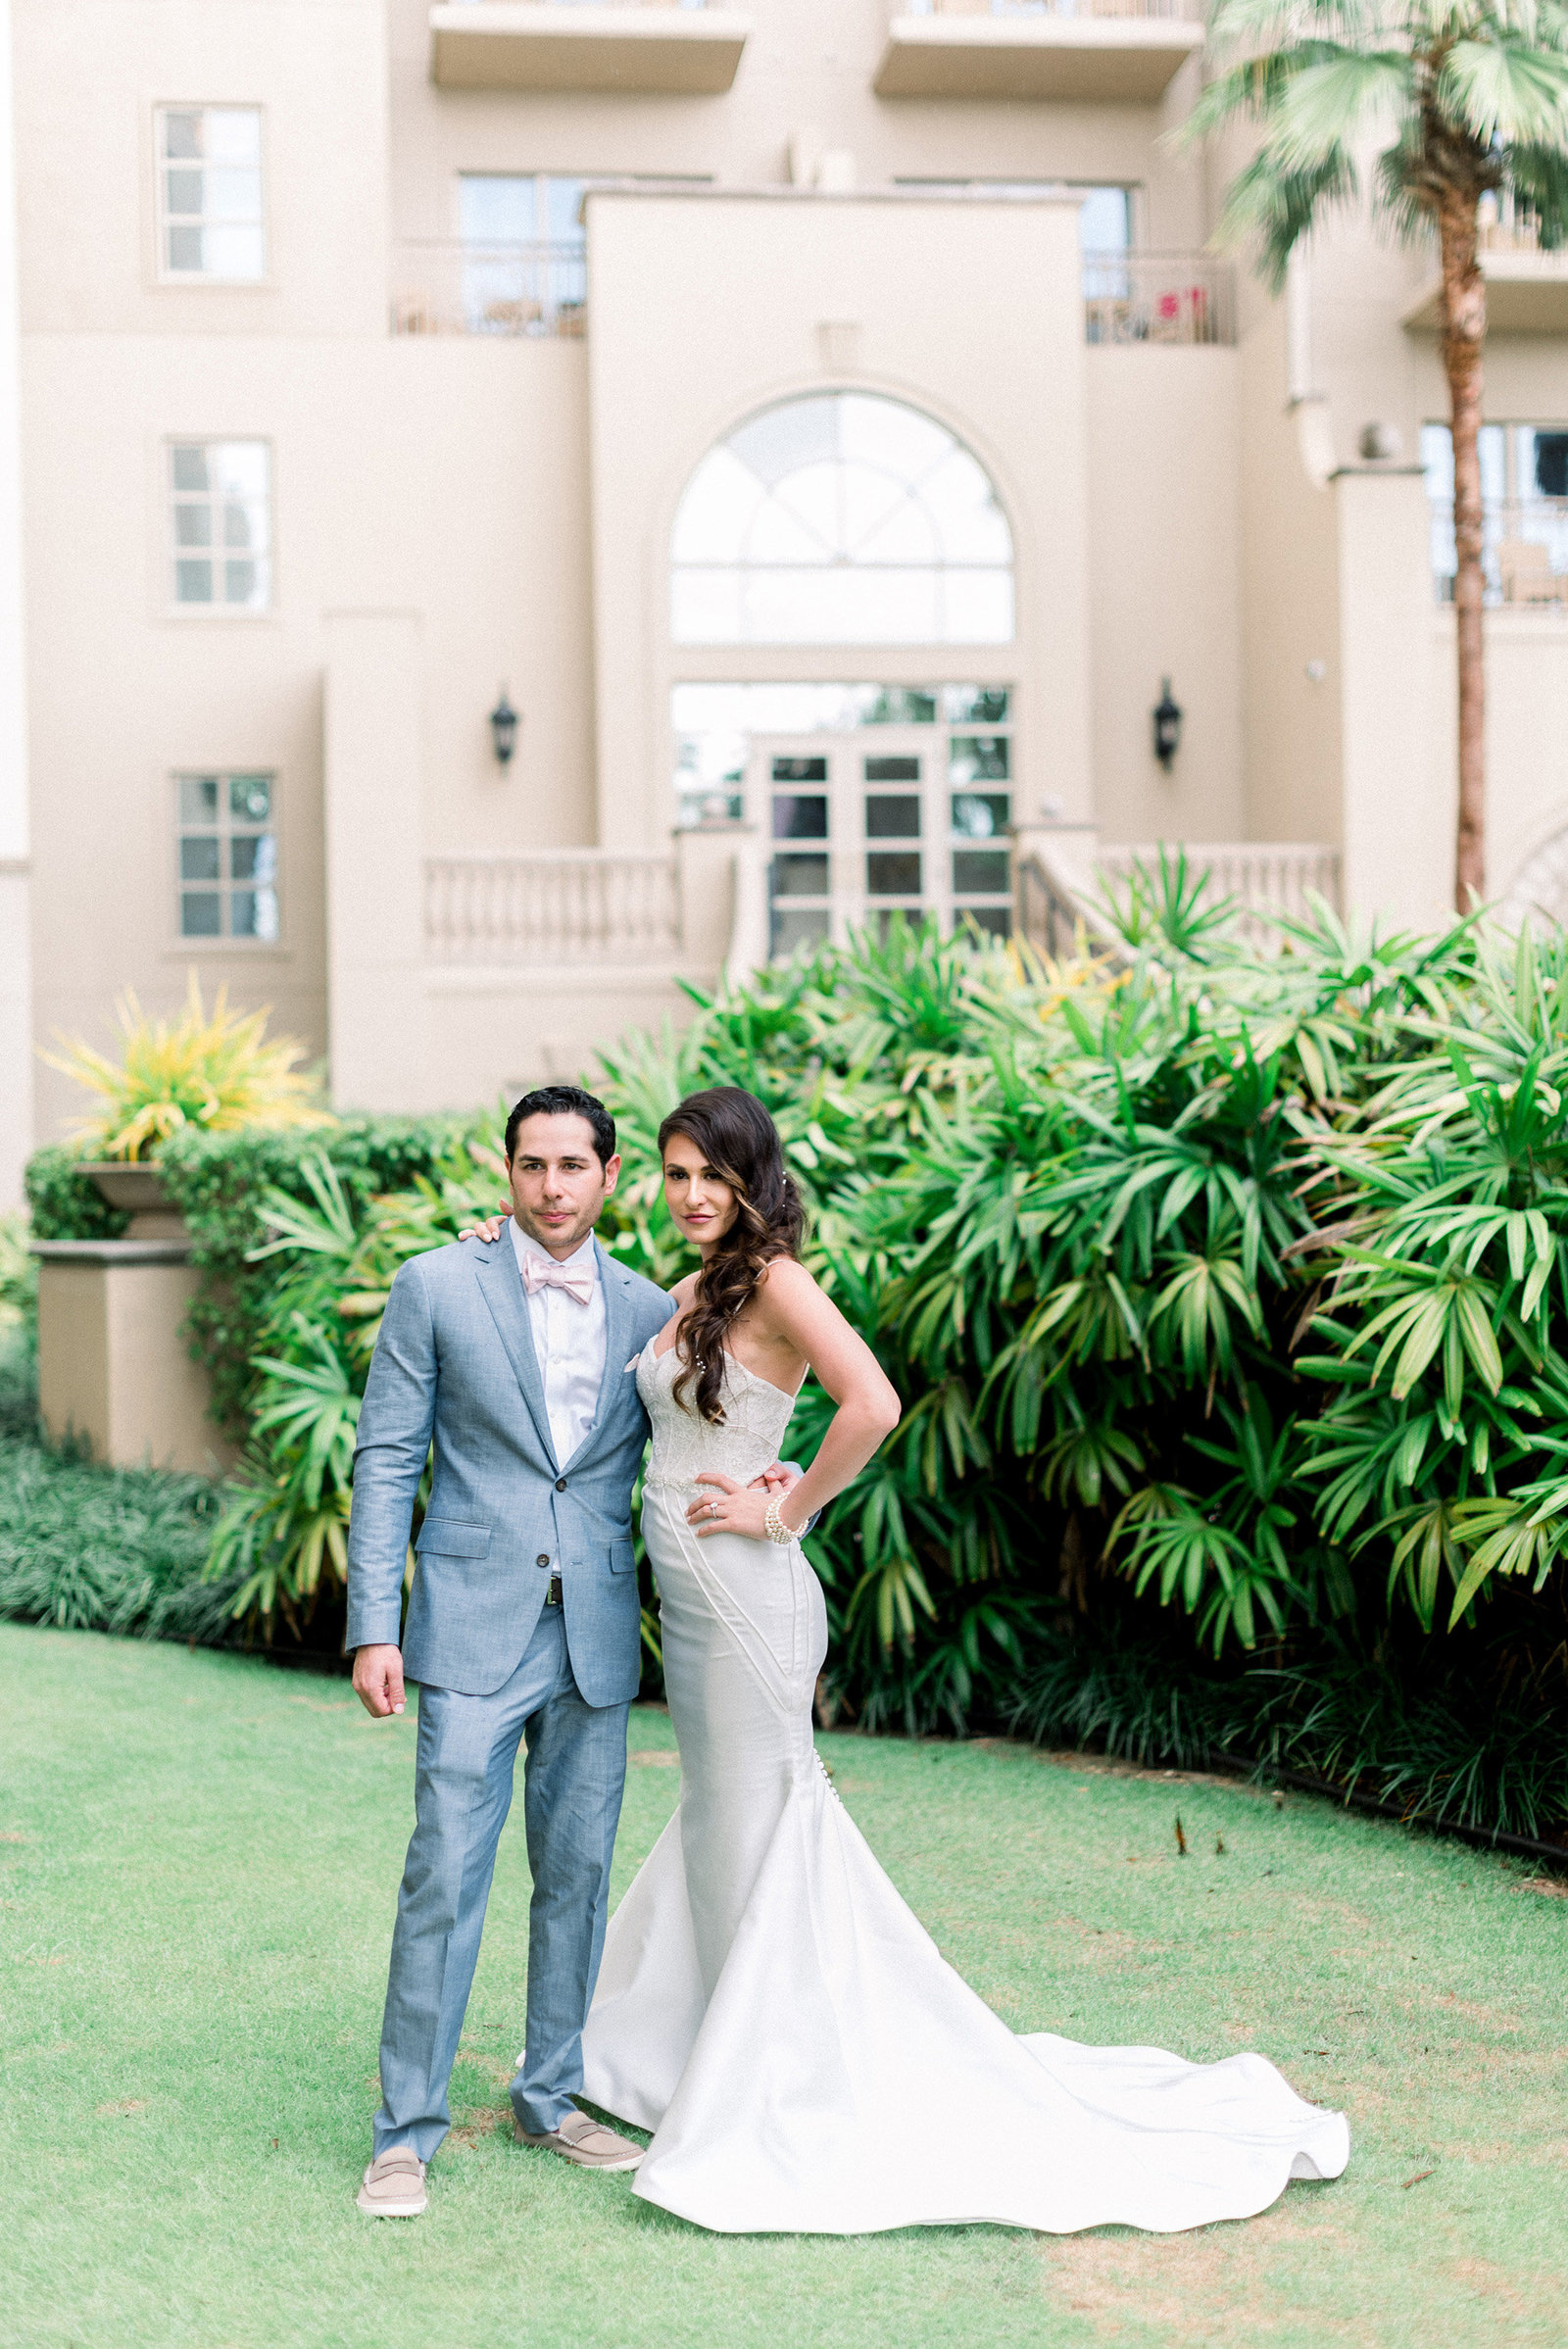 20180512-Pura-Soul-Photo-Ritz-Grand-Cayman-Wedding-37